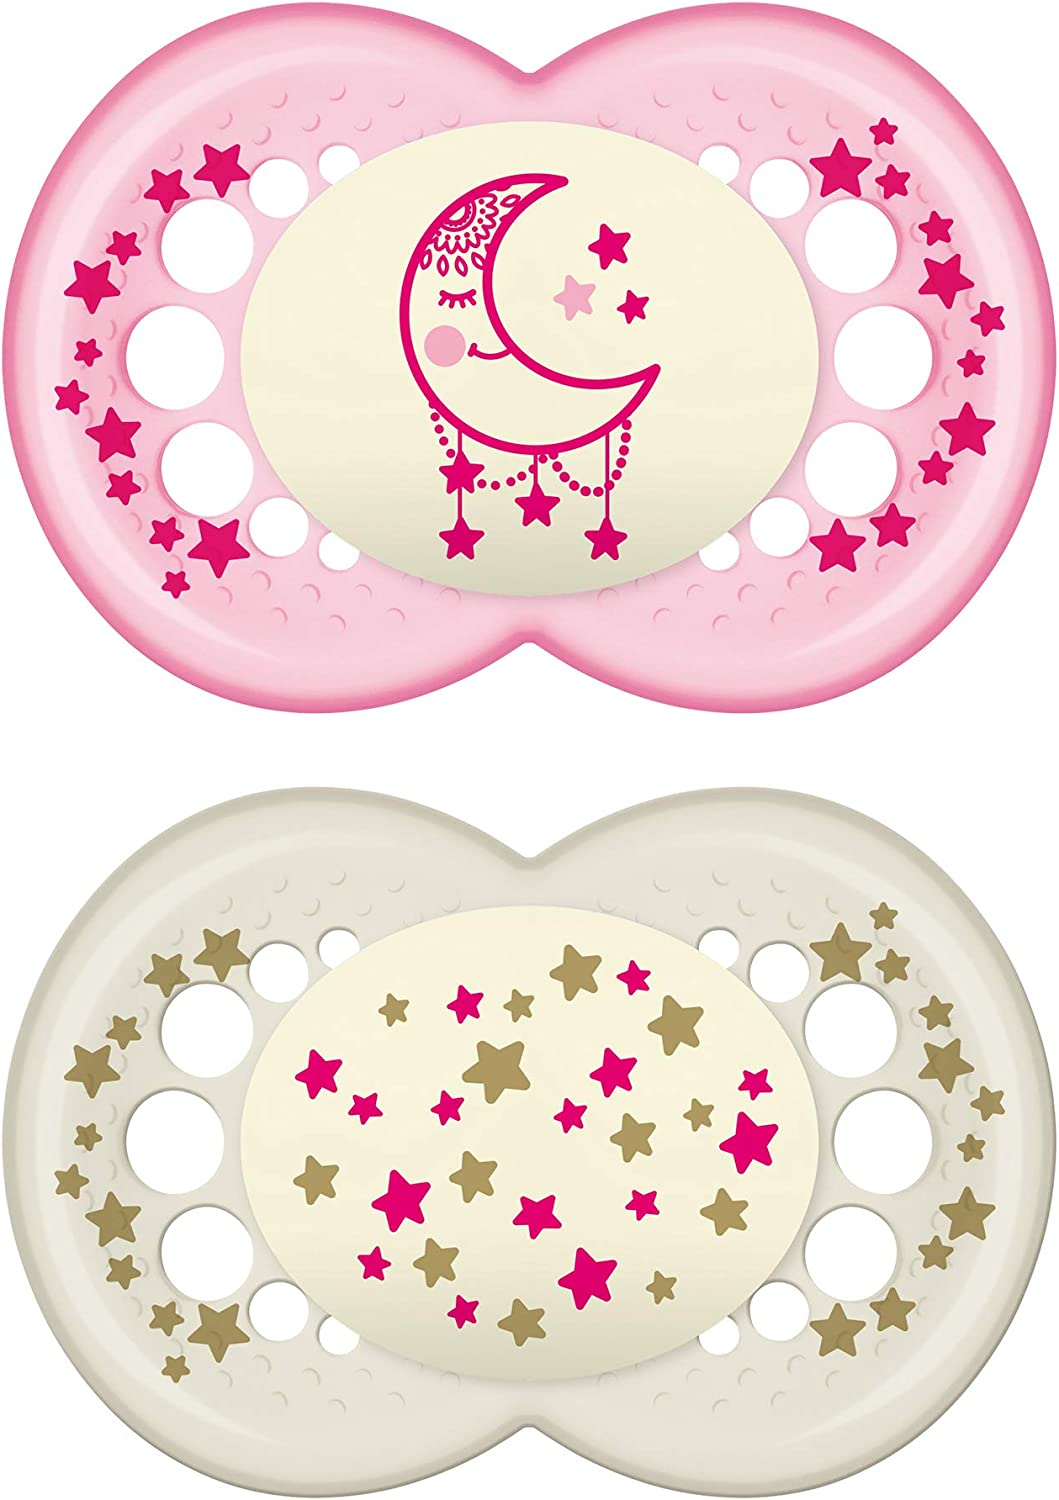 Boy 2-Count MAM Glow In the Dark Pacifiers Best Pacifier for Breastfed Babies Night/' Design Collection Baby Pacifier 6+ Months